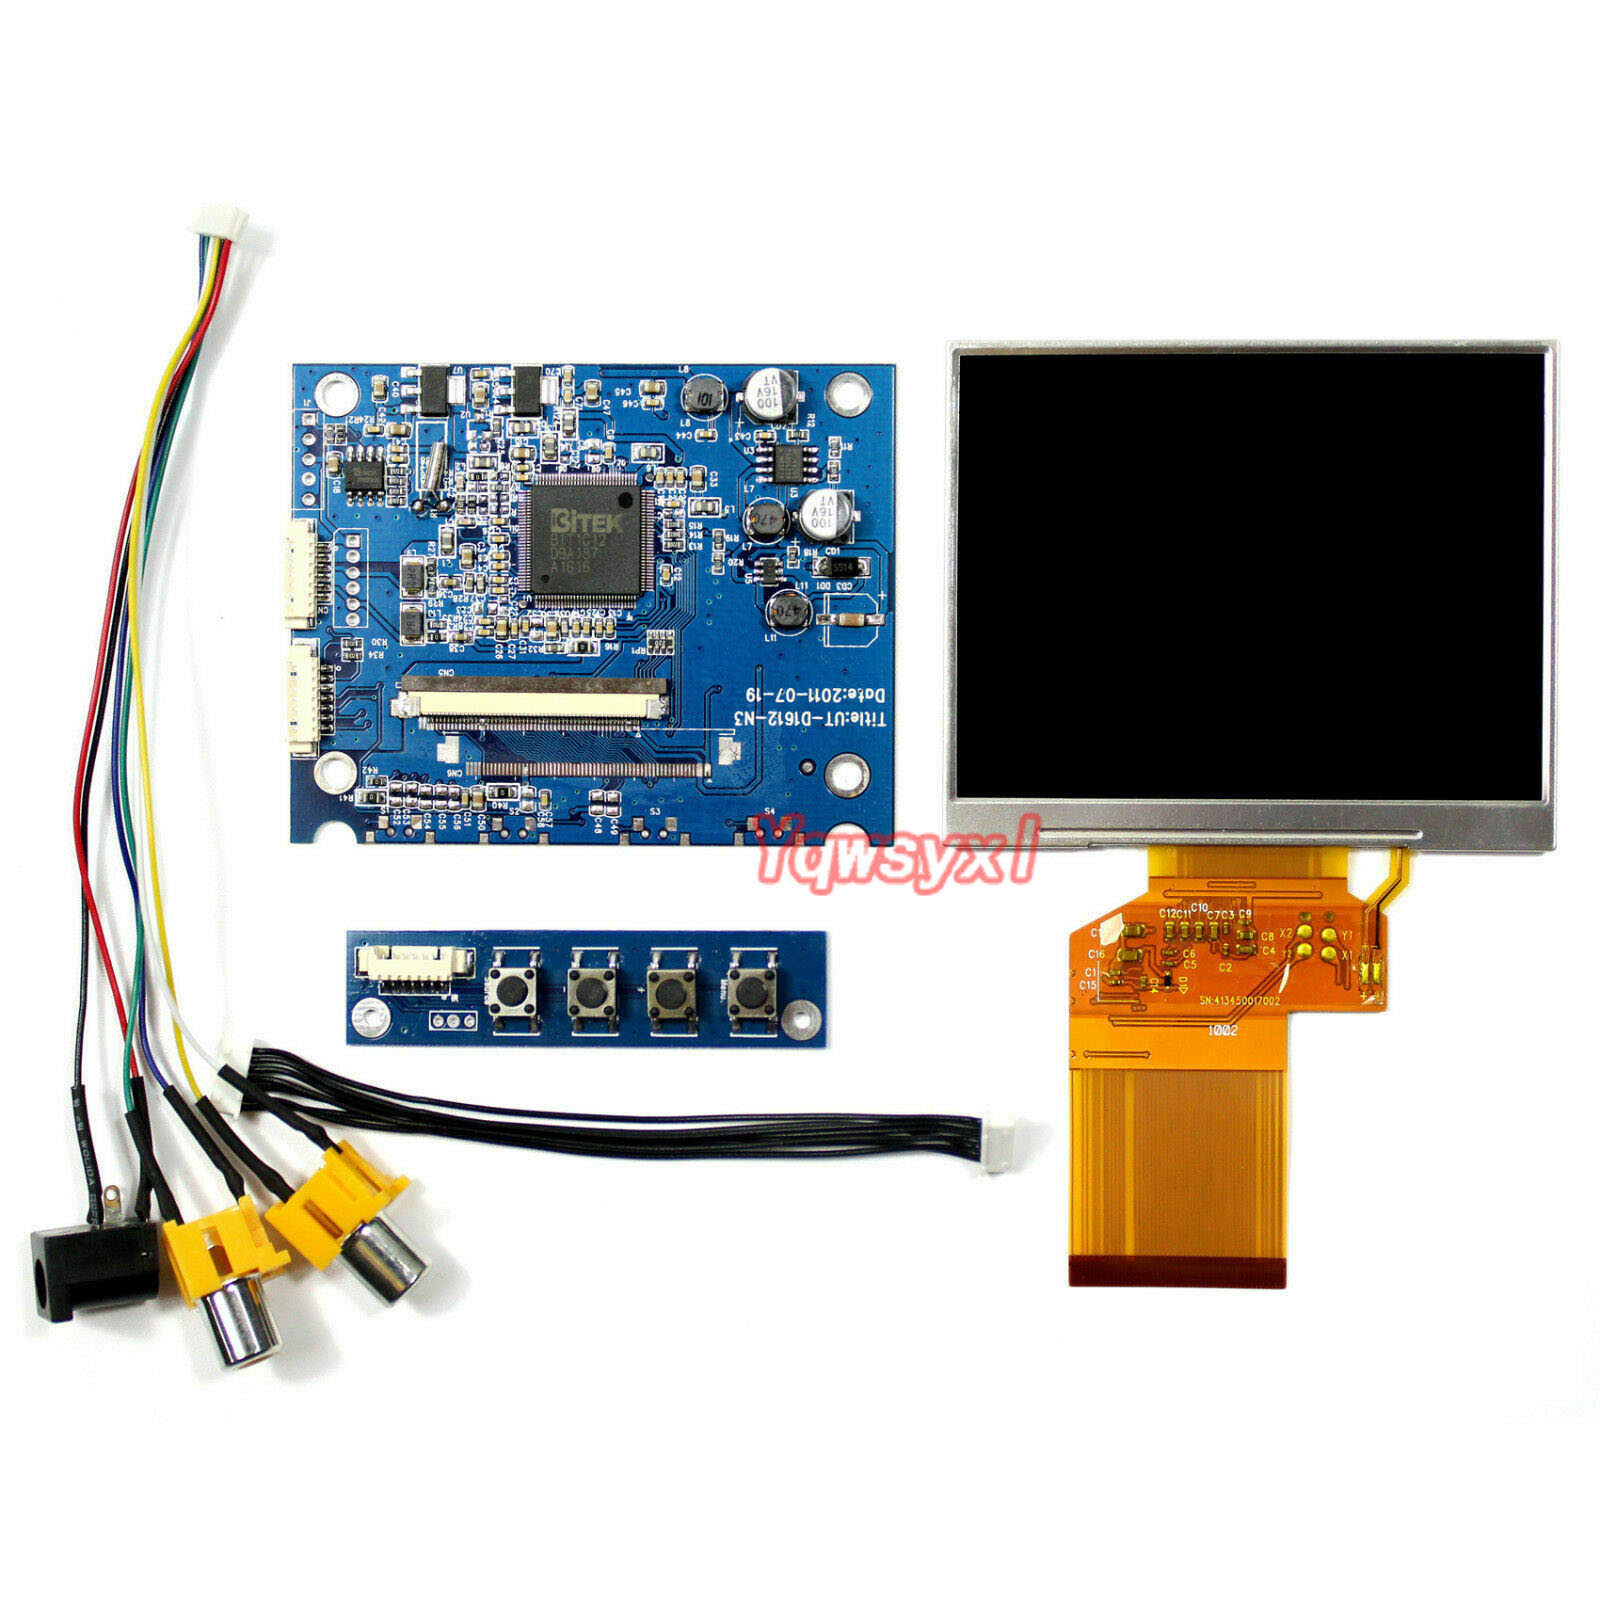 Yqwsyxl New 3.5inch LQ035NC111 320x240 LCD Screen With 2AV LCD Controller Board For Satlink WS 6906 Satellite Finder LCD Screen